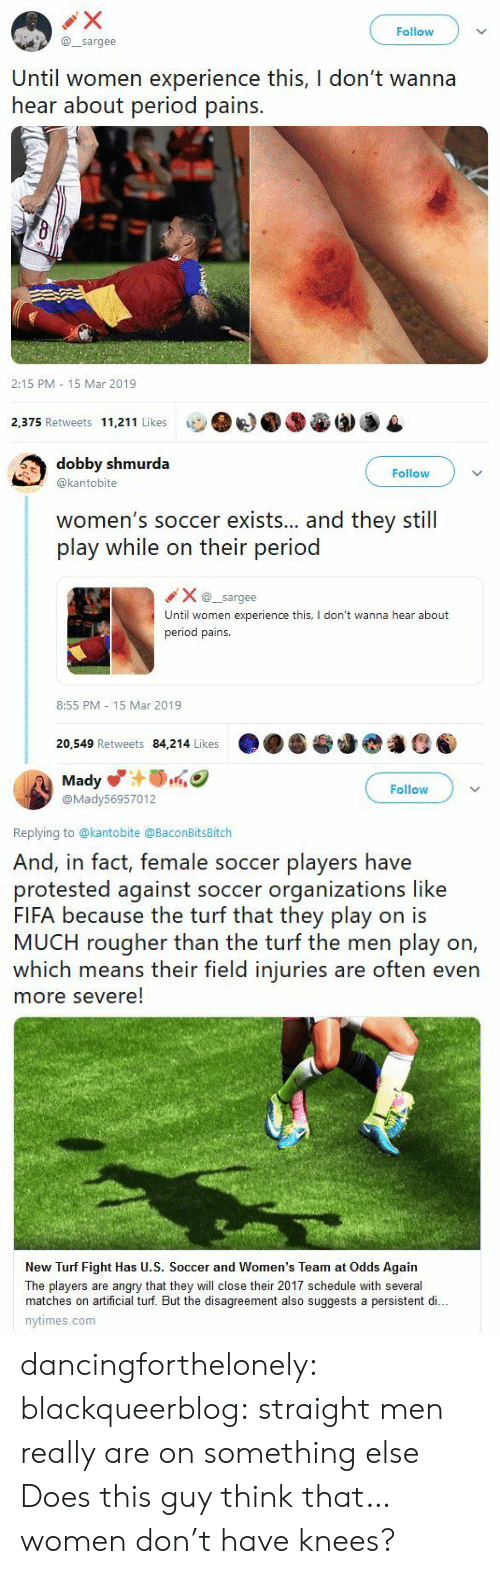 turf: Follow  @sargee  Until women experience this, I don't wanna  hear about period pains.  2:15 PM 15 Mar 2019  2,375 Retweets 11,211 Likes   dobby shmurda  @kantobite  Follow  women's soccer exists... and they still  play while on their period  Xsargee  Until women experience this, I don't wanna hear about  period pains.  8:55 PM 15 Mar 2019  20,549 Retweets 84,214 Likes   Mady  @Mady56957012  Follow  Replying to @kantobite @BaconBitsBitch  And, in fact, female soccer players have  protested against soccer organizations like  FIFA because the turf that they play on is  MUCH rougher than the turf the men play on,  which means their field injuries are often even  more severe!  New Turf Fight Has U.S. Soccer and Women's Team at Odds Again  The players are angry that they will close their 2017 schedule with several  matches on artificial turf. But the disagreement also suggests a persistent di..  nytimes.com dancingforthelonely:  blackqueerblog:   straight men really are on something else    Does this guy think that…women don't have knees?